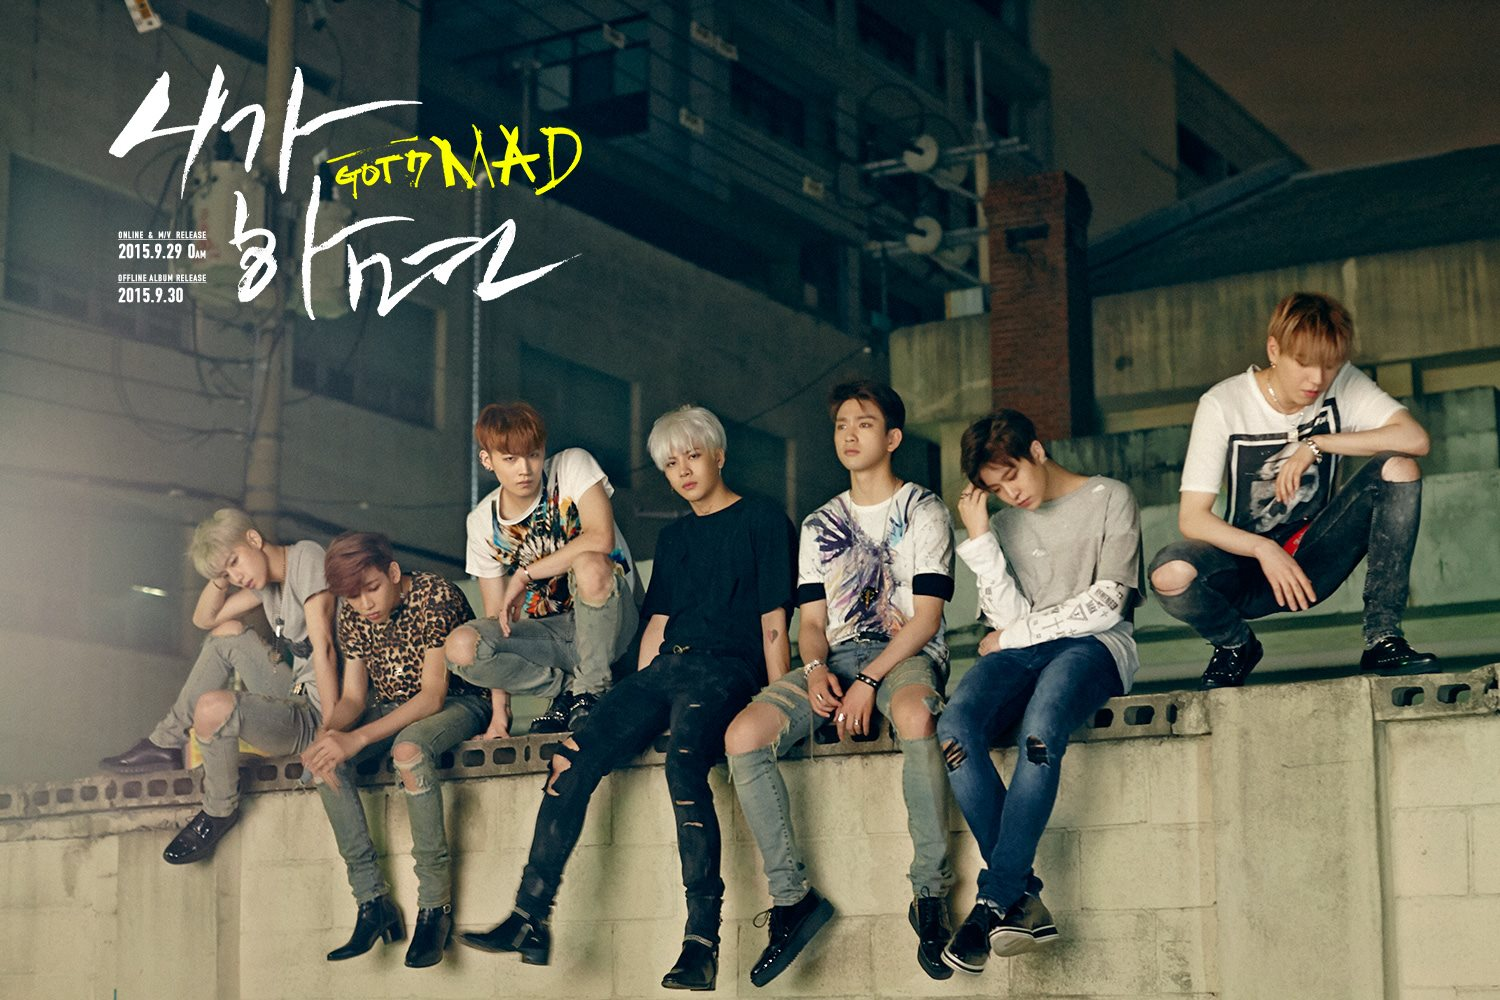 MP3] Download lagu GOT7 - If You do MAD full album with